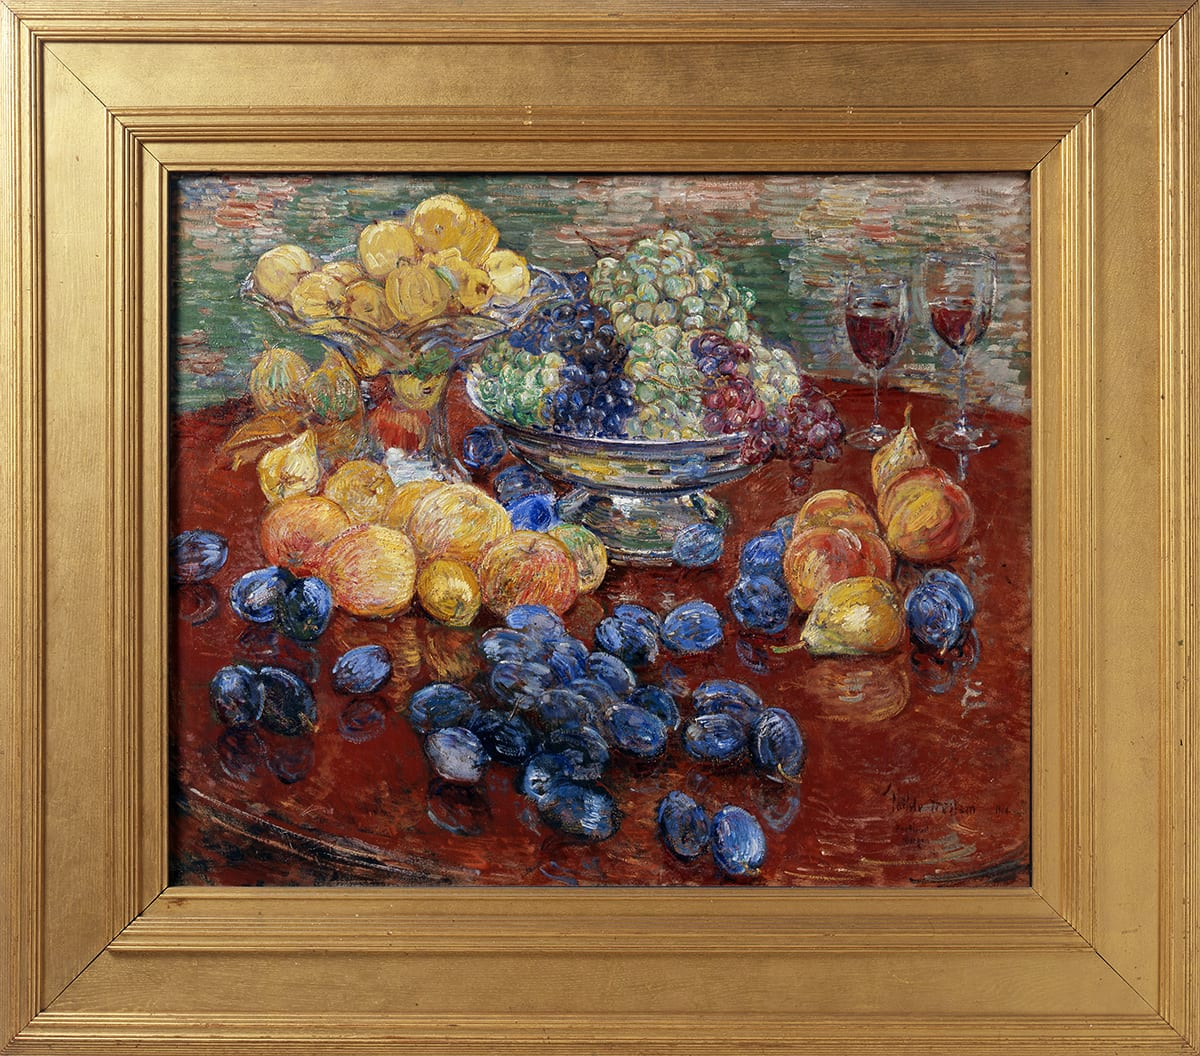 Childe Hassam. Oregon Still Life, 25 x 30 ¼ inches, oil on canvas. A painting of an assortment of fruit laid out on a round, dark brown table, the edges of which are mostly out of frame. At top, at 11 and 12 o'clock, are a glass bowl with a tall stand brimming with yellow apples that sits beside a squat, silver bowl holding green, purple, and red grapes. Just below the glass bowl are more yellow apples, some with a hint of pink. Further down the painting and scattered over the table are deep blueish-purple plums. At three o'clock are a grouping of a half dozen peaches and pears set near two half-filled glasses that suggest wine. The painting technique is bold and uses dry brush strokes. Paint is heavily layered, revealing the colors underneath in areas. The table and fruit are set against a background heavily painted with horizontal strokes in muted greens, terra cotta, and whites with deep yellow.